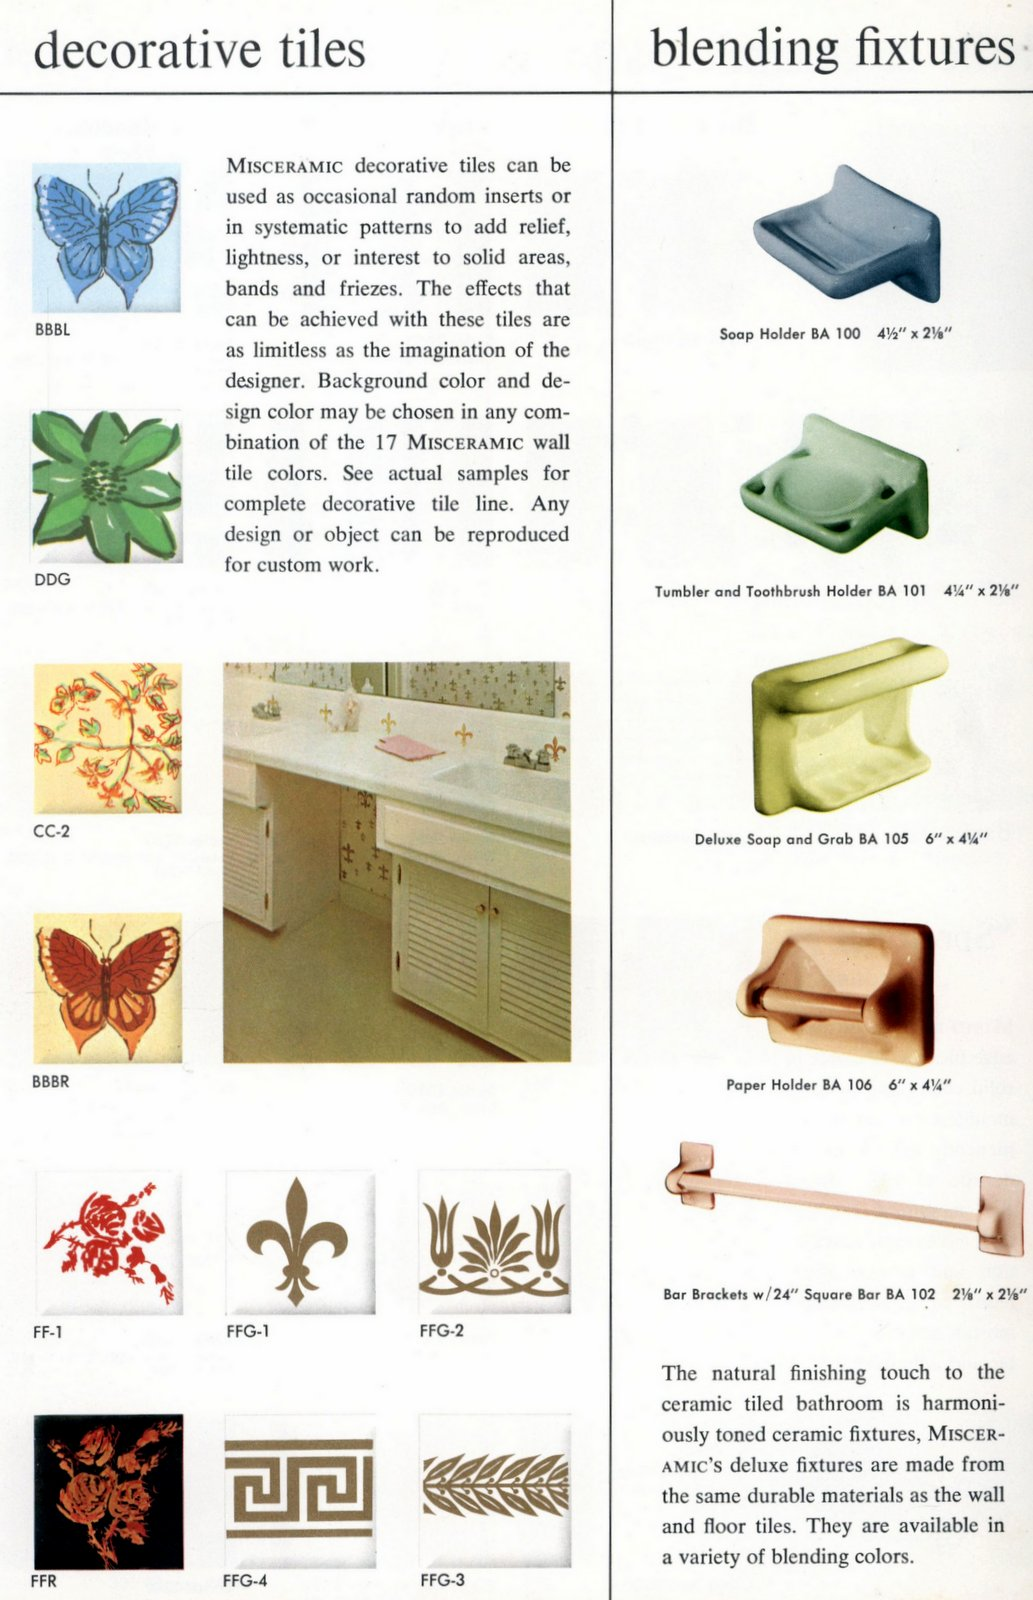 Mid-century soap dishes and blending fixtures to match tile plus decorative tiles